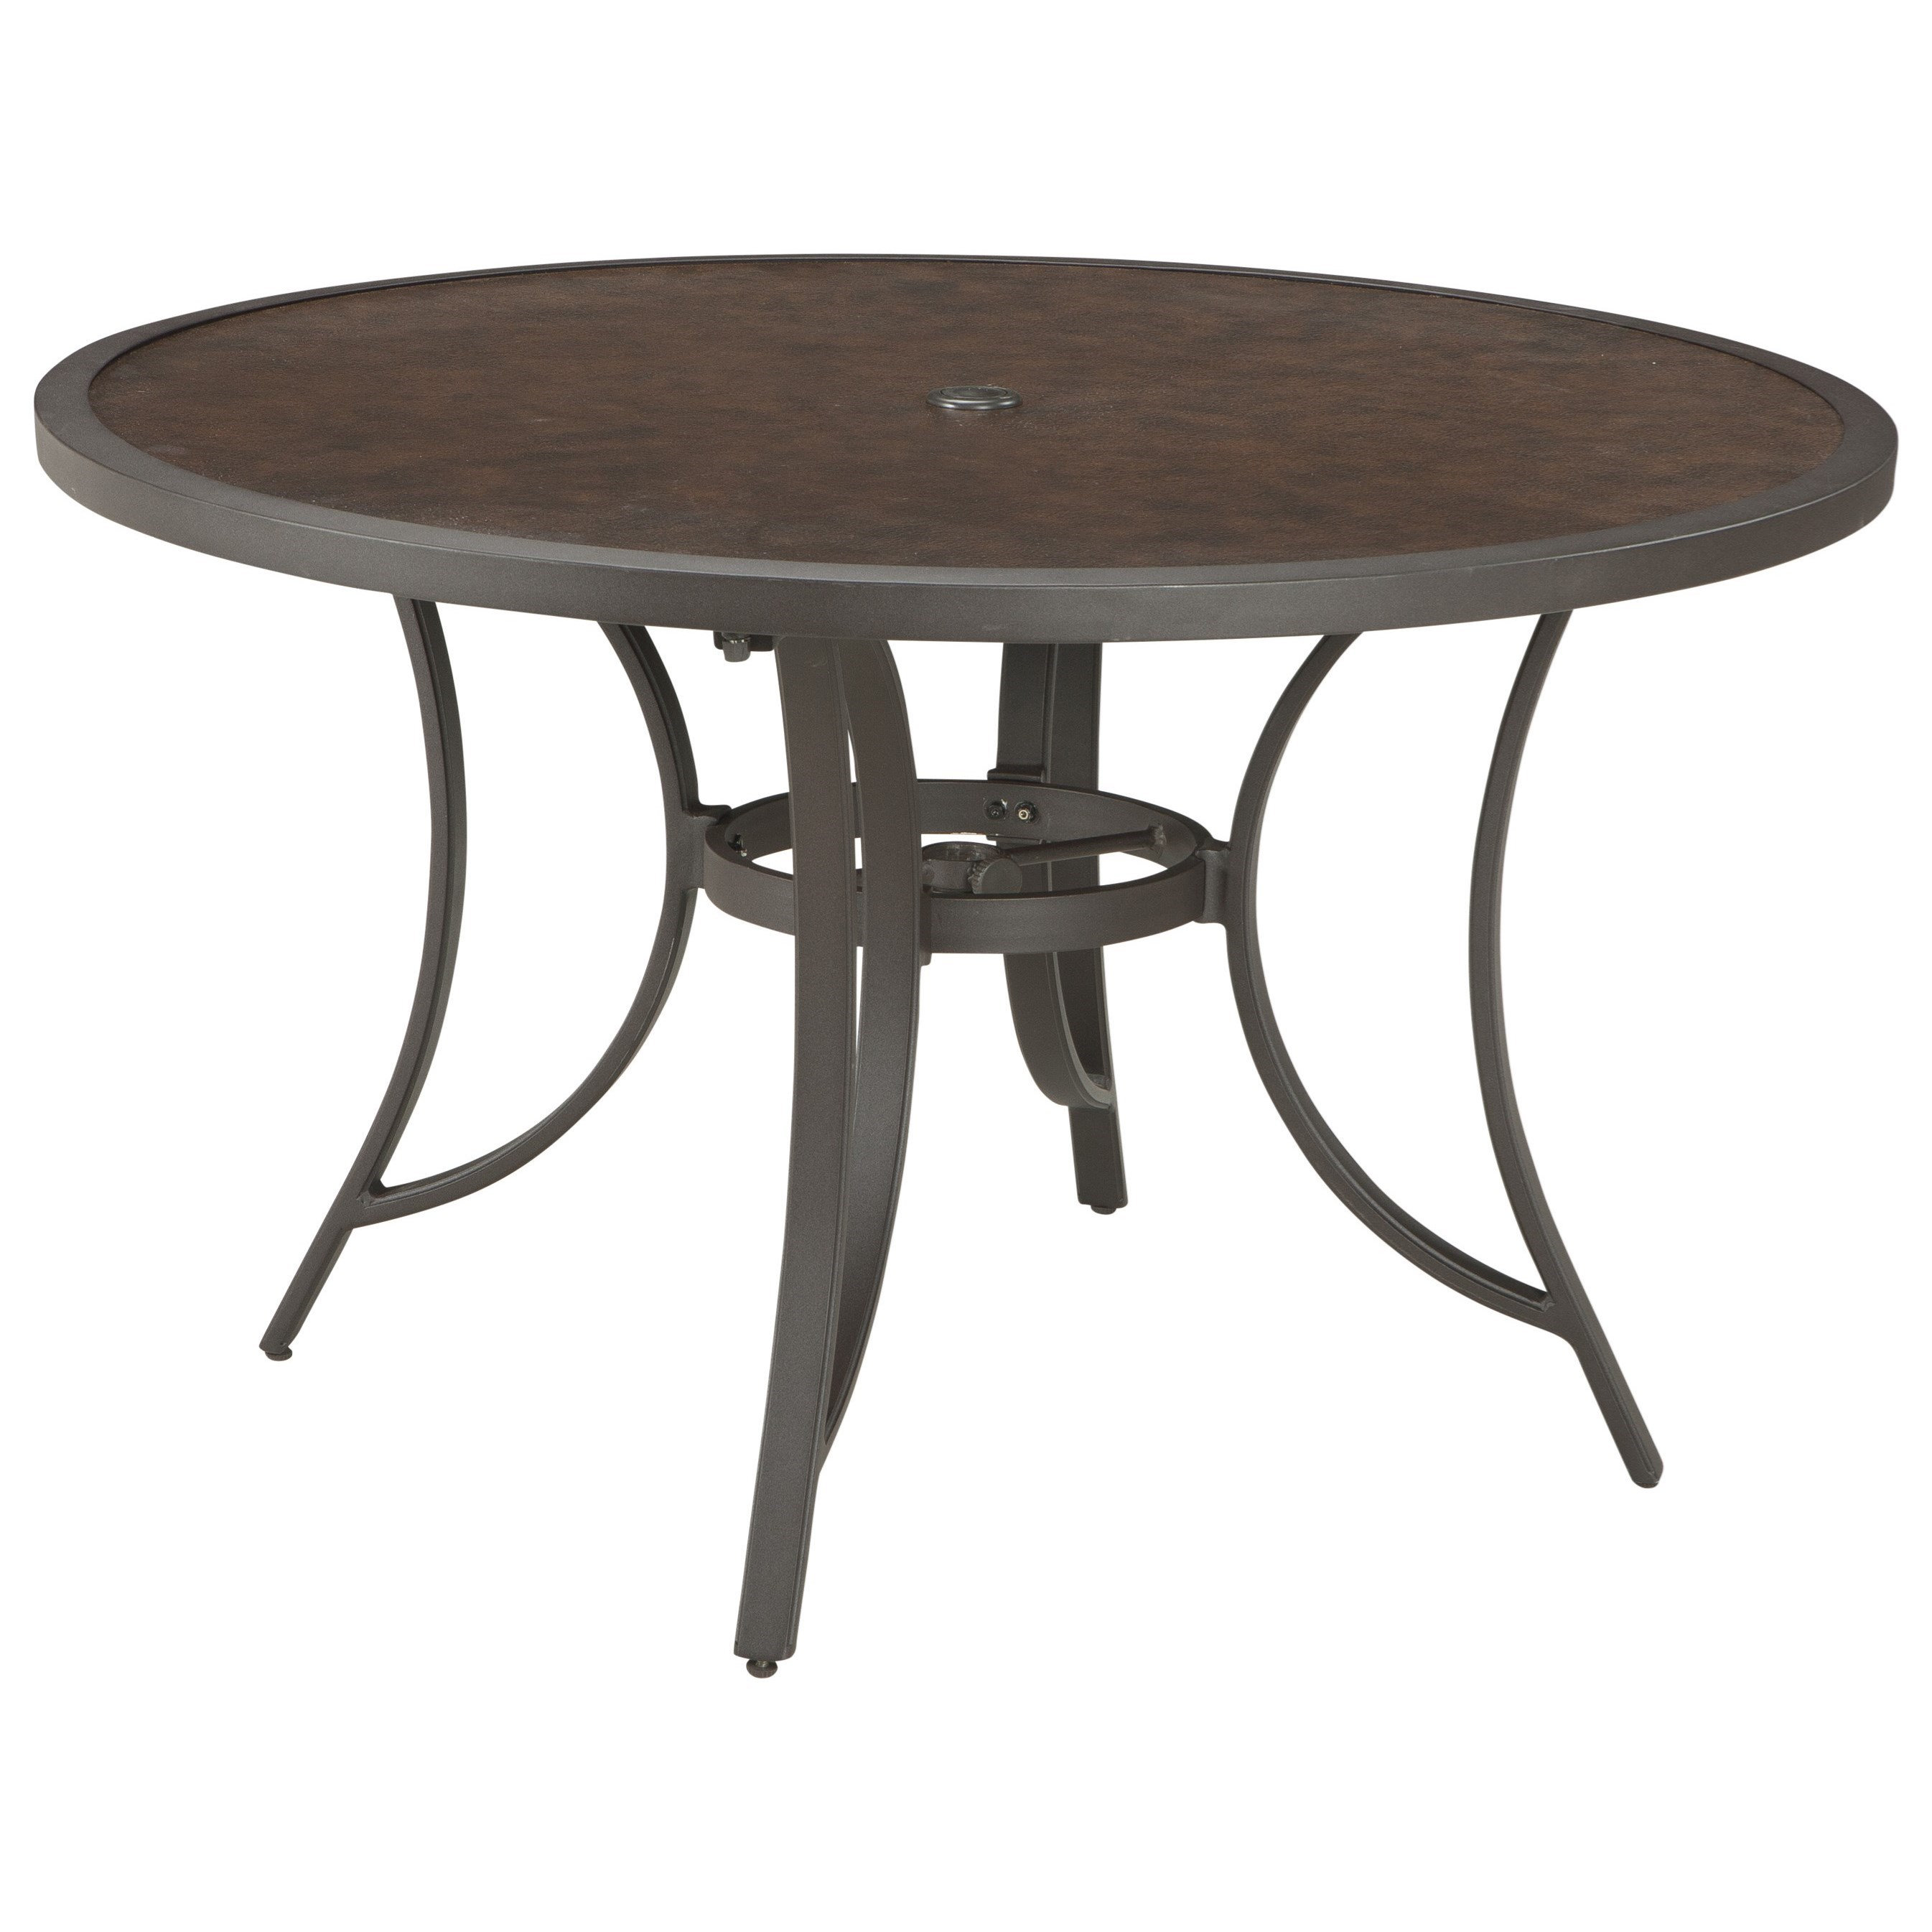 Outdoor round dining table - Signature Design By Ashley Carmadelia Outdoor Round Dining Table W Umbrella Opt Item Number